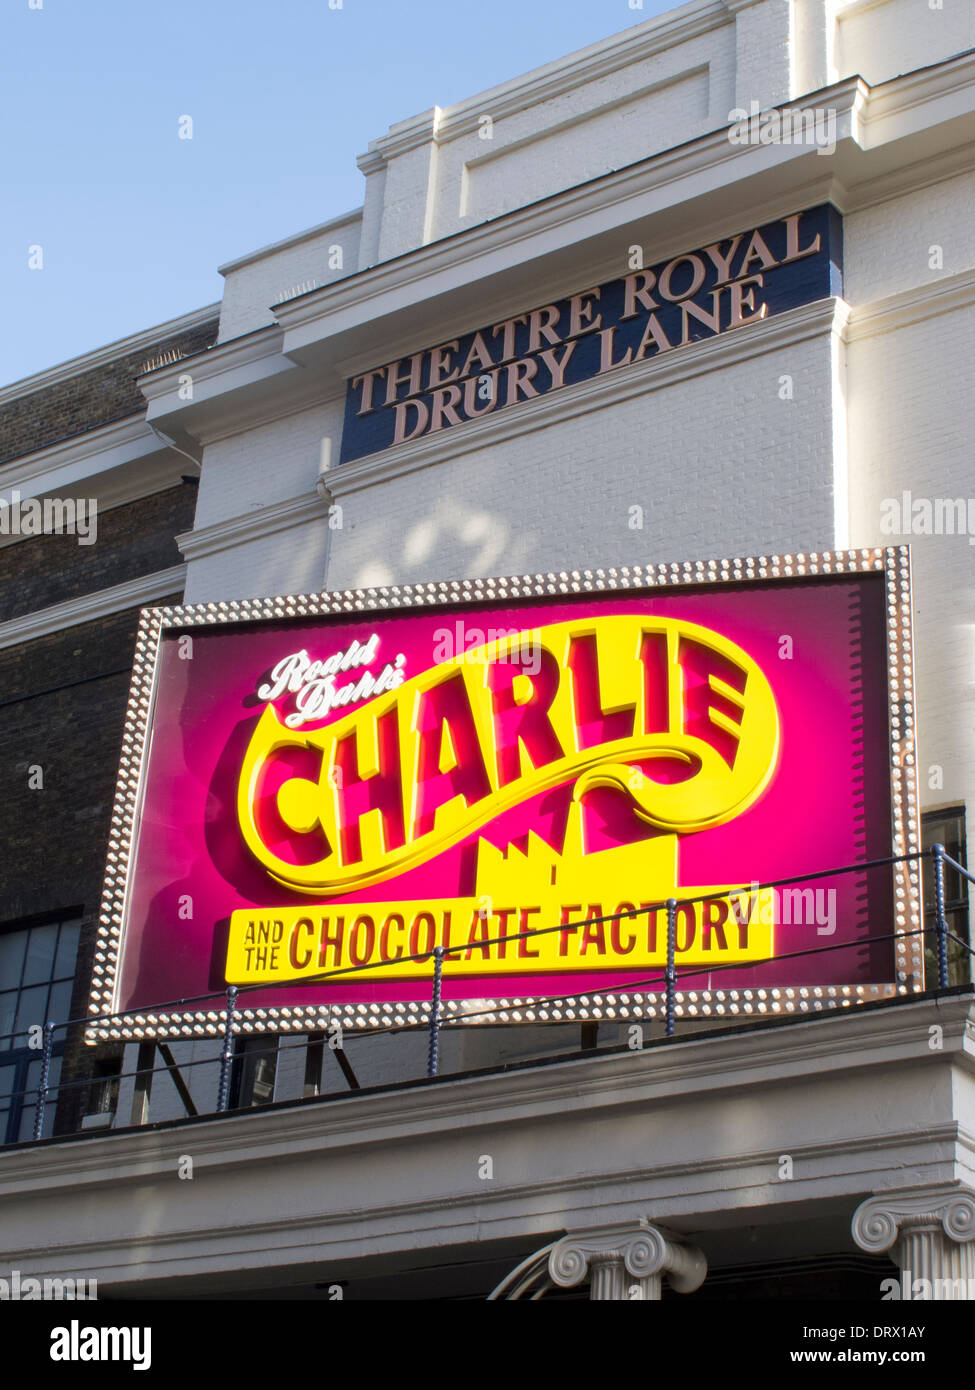 Charlie and The Chocolate Factory At The Theatre Royal Drury Lane - Stock Image